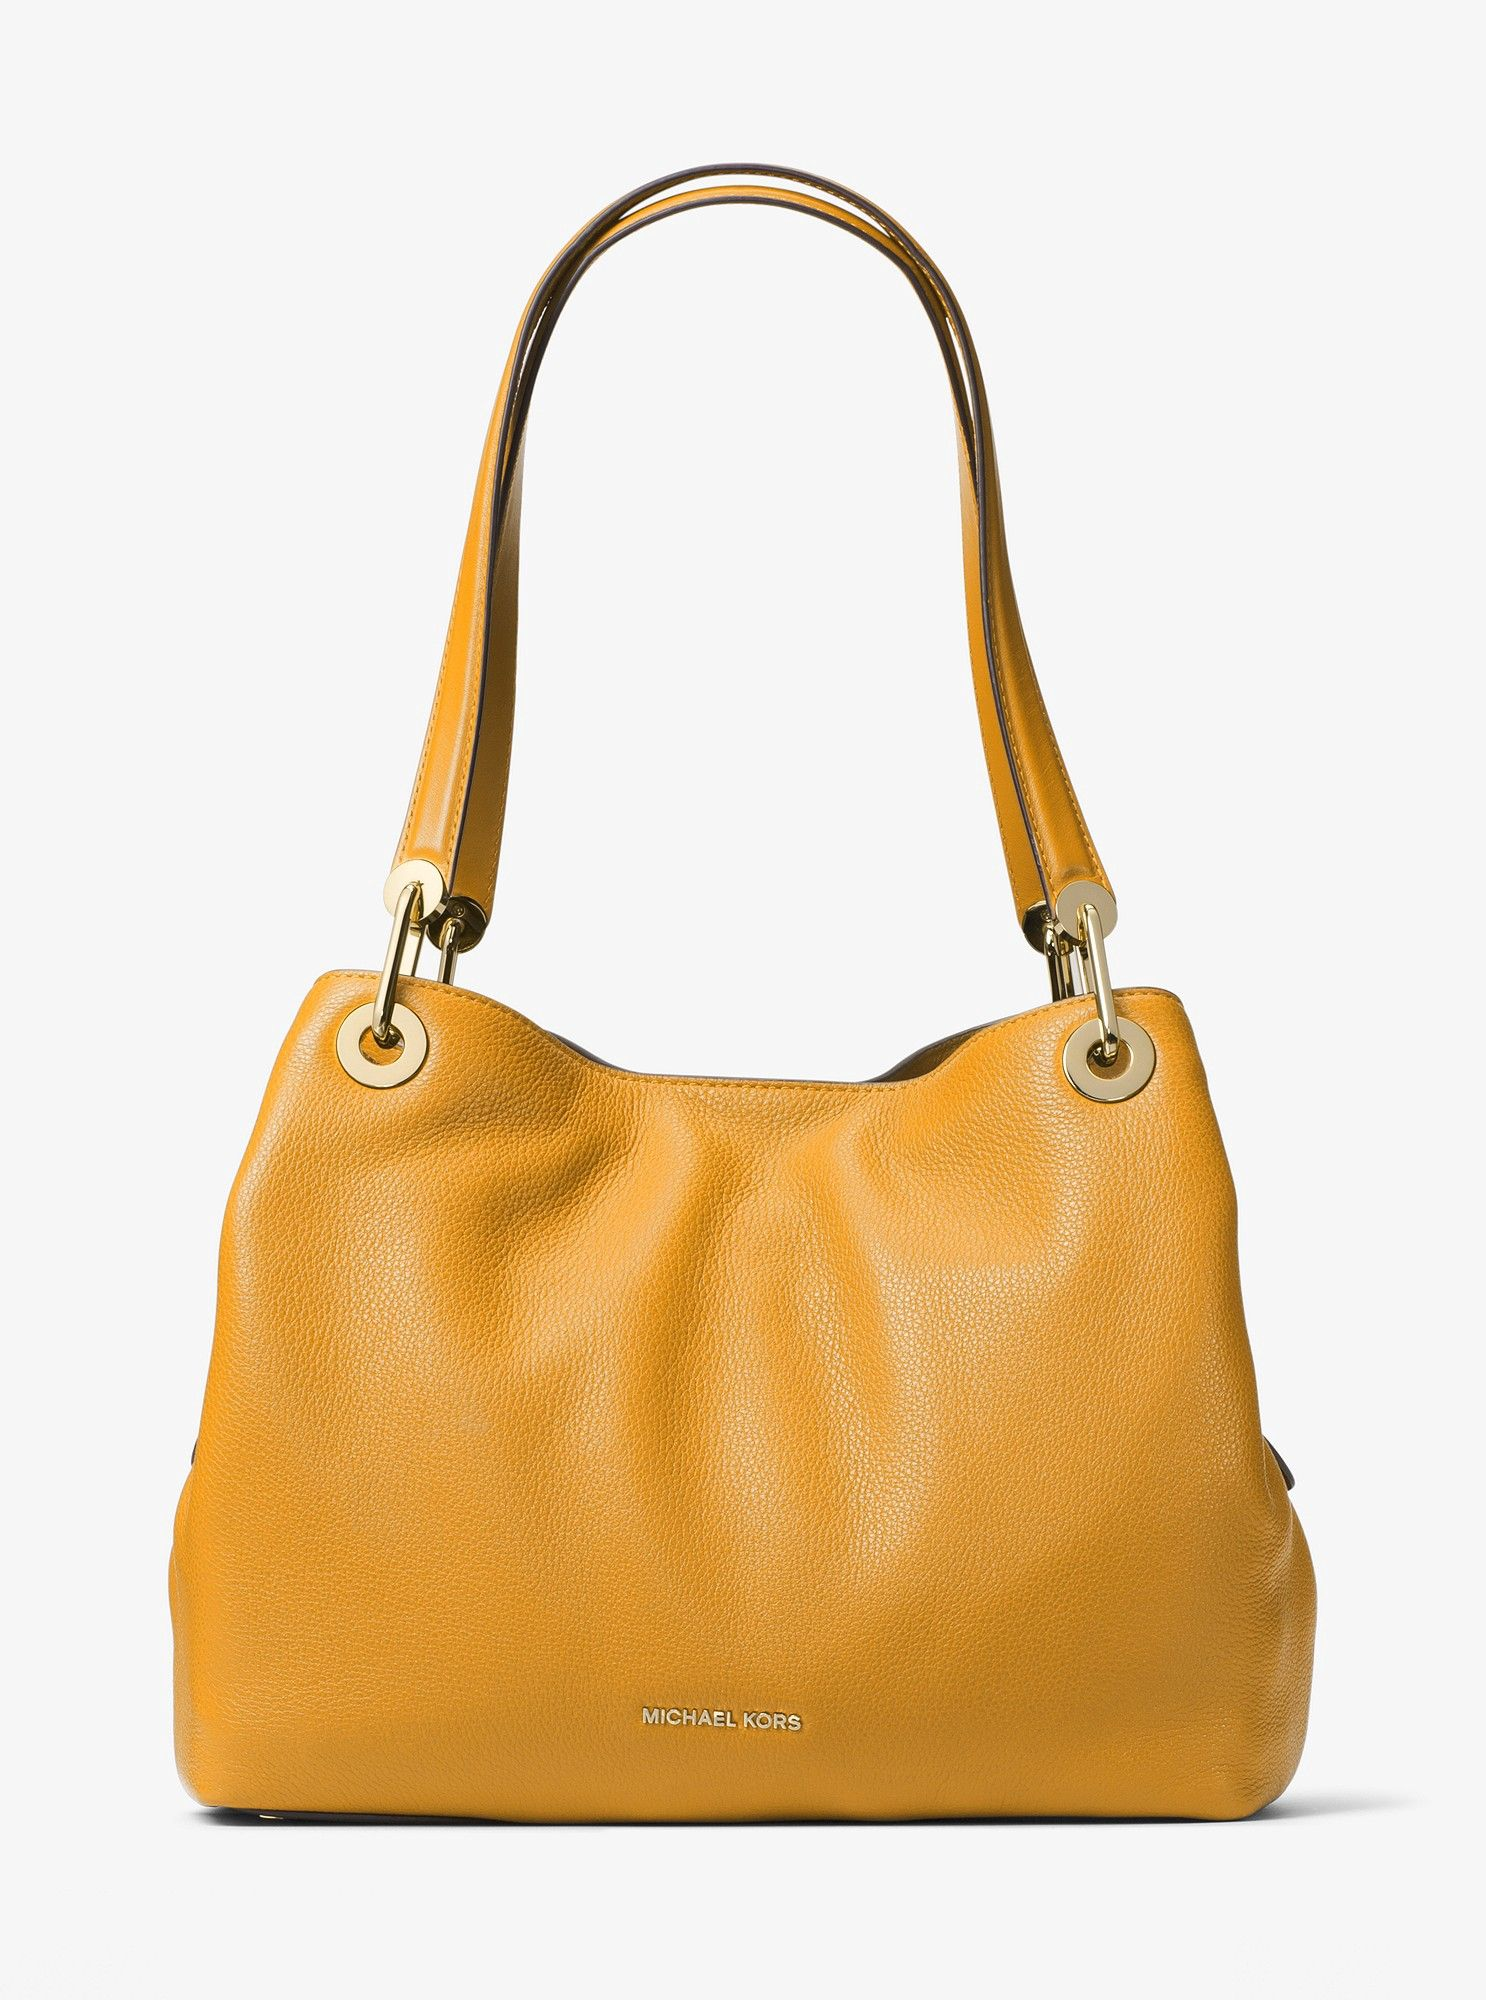 4d7823eccda0 Michael Kors Raven Large Leather Shoulder Bag - Acorn One Sizexns